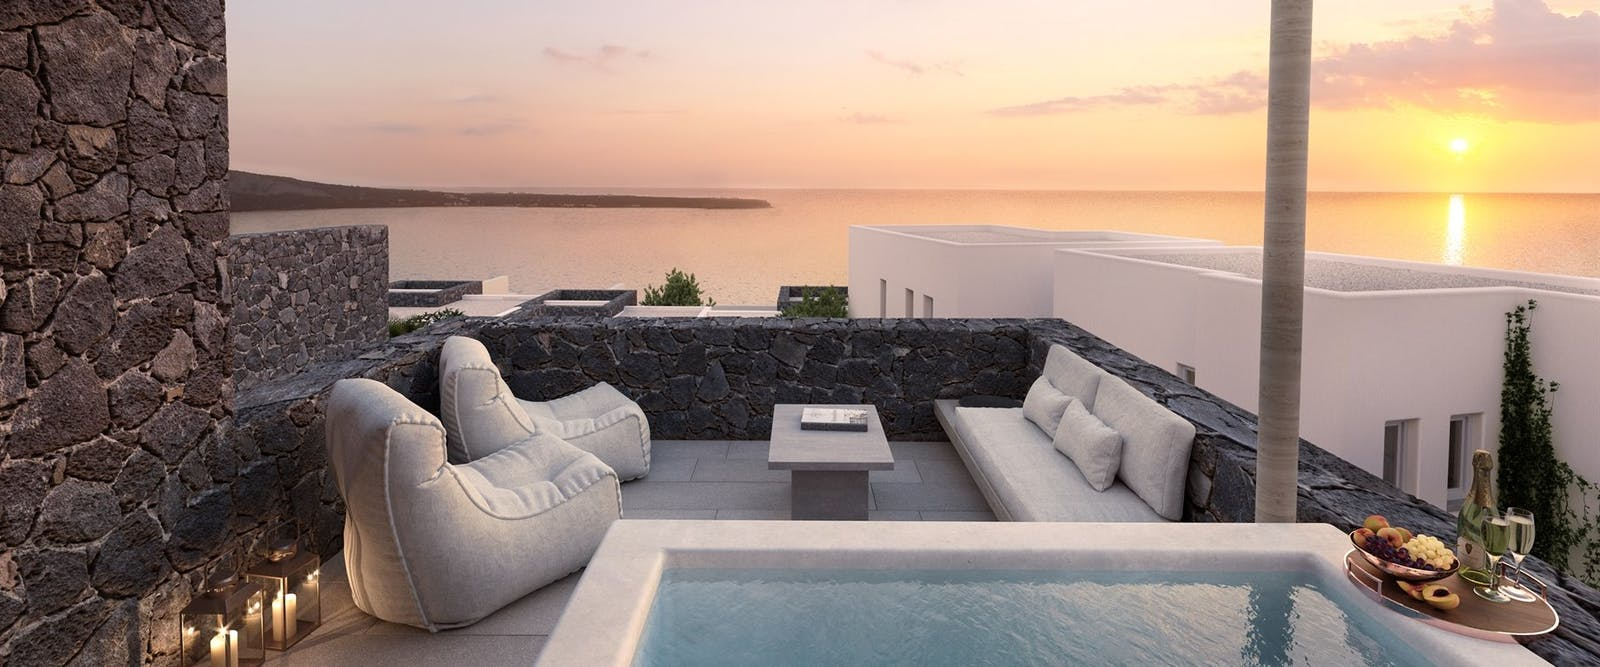 Private Terrace at Canaves Oia Epitome, Santorini, Greece